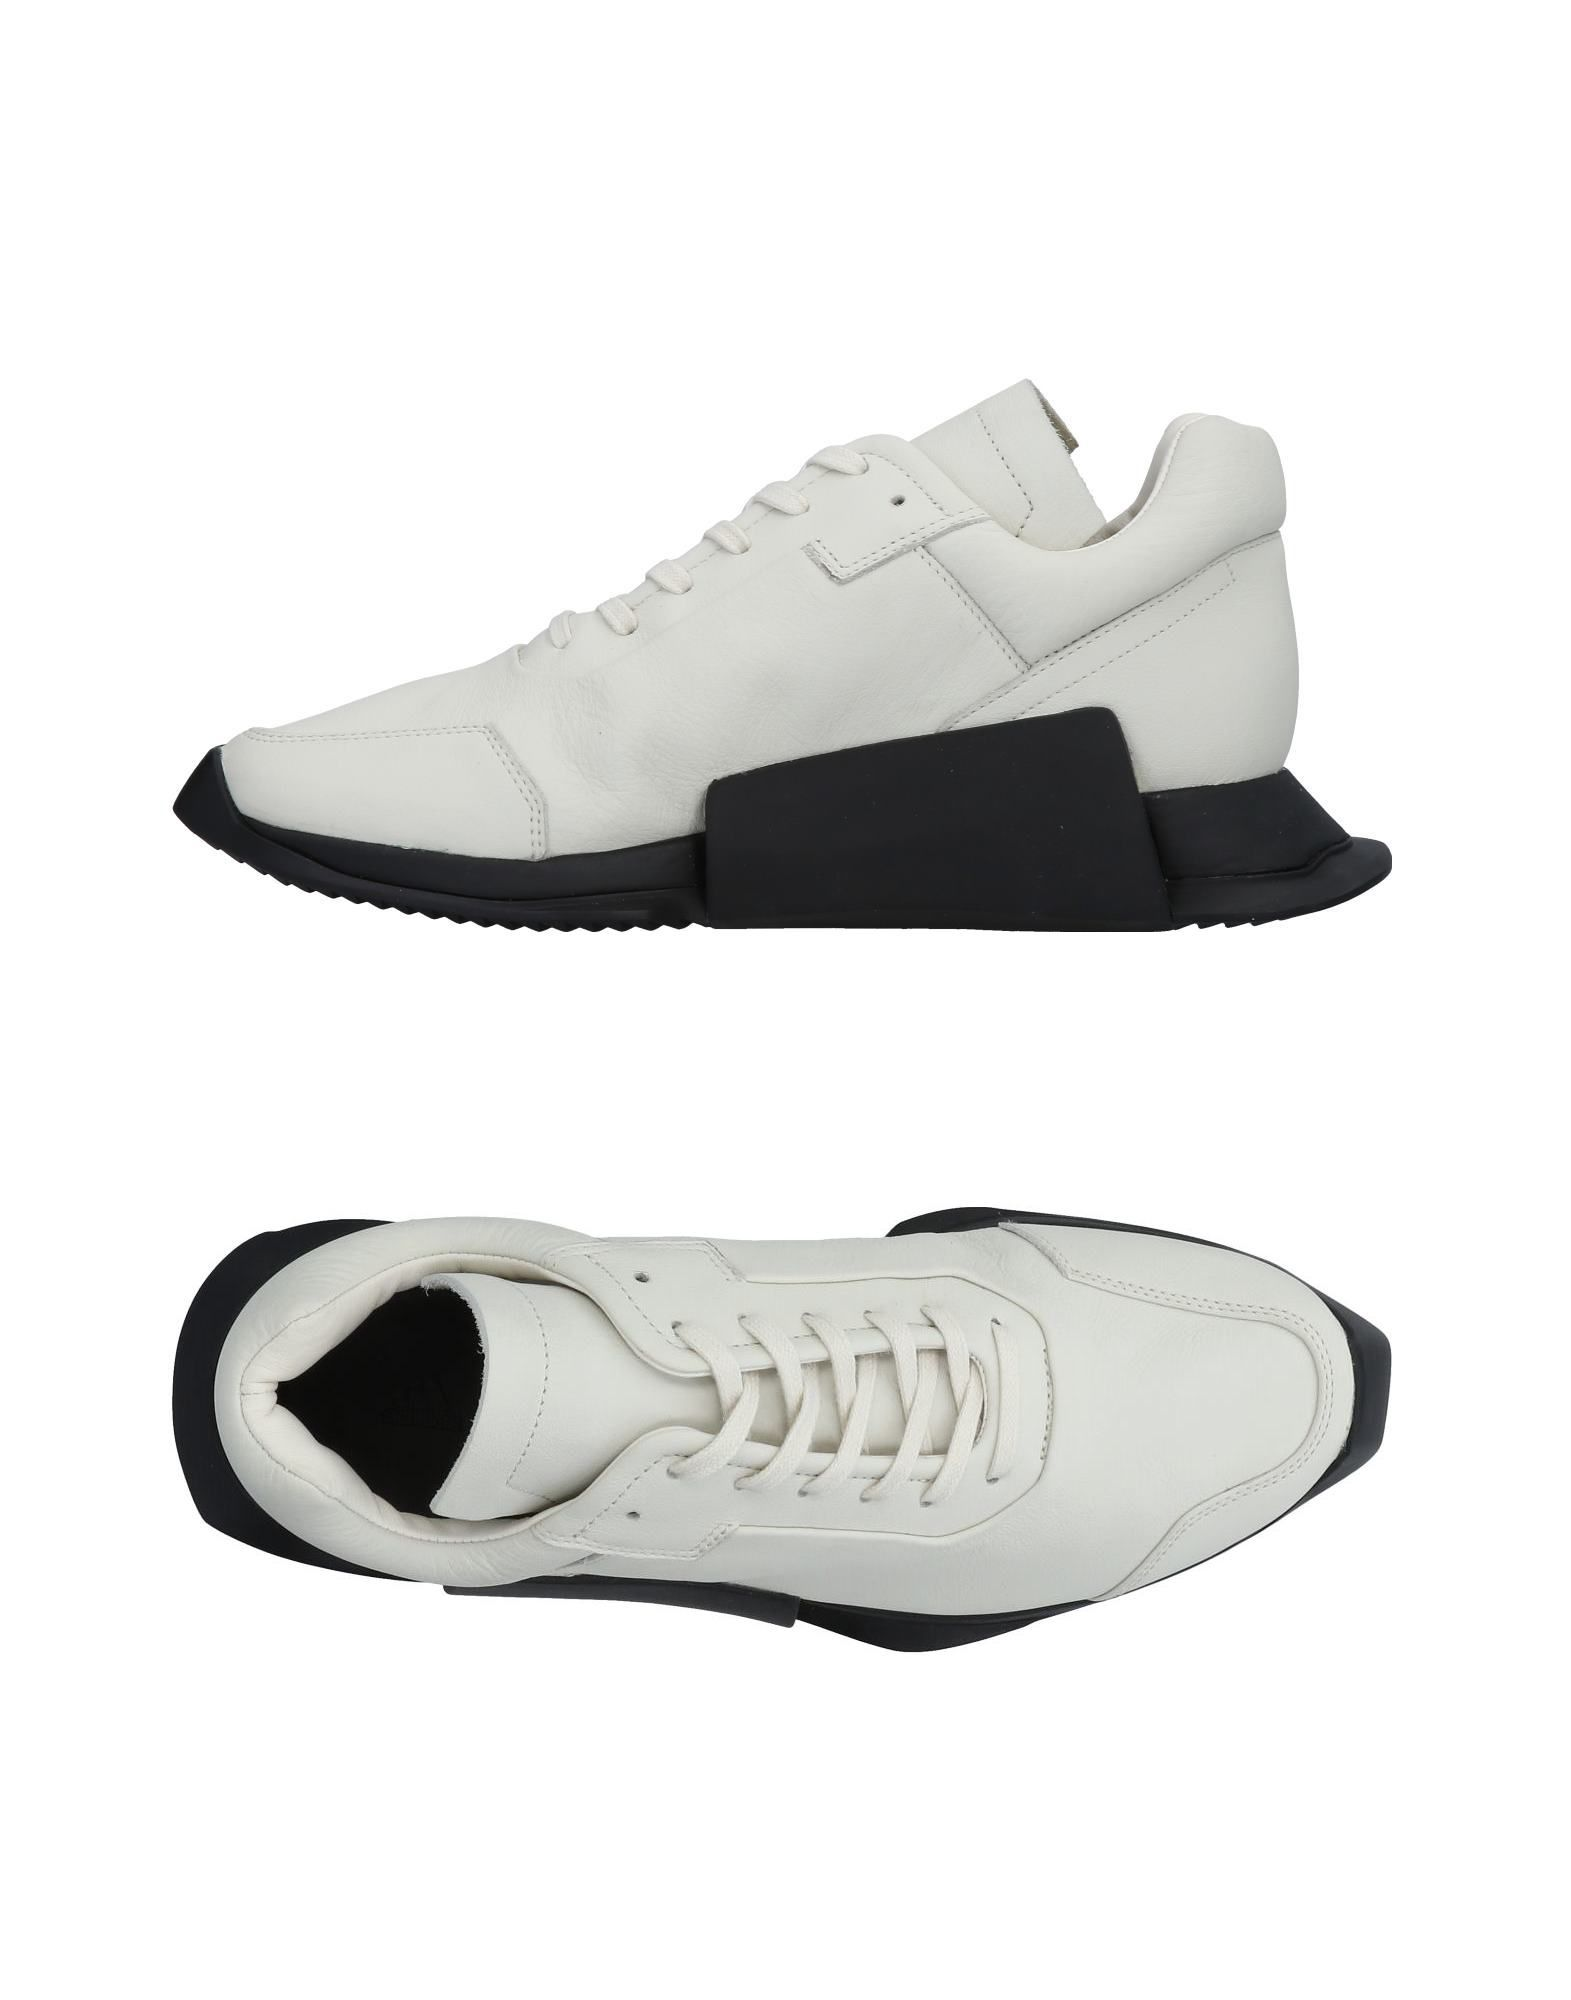 ADIDAS BY RICK OWENS Sneakers in Ivory